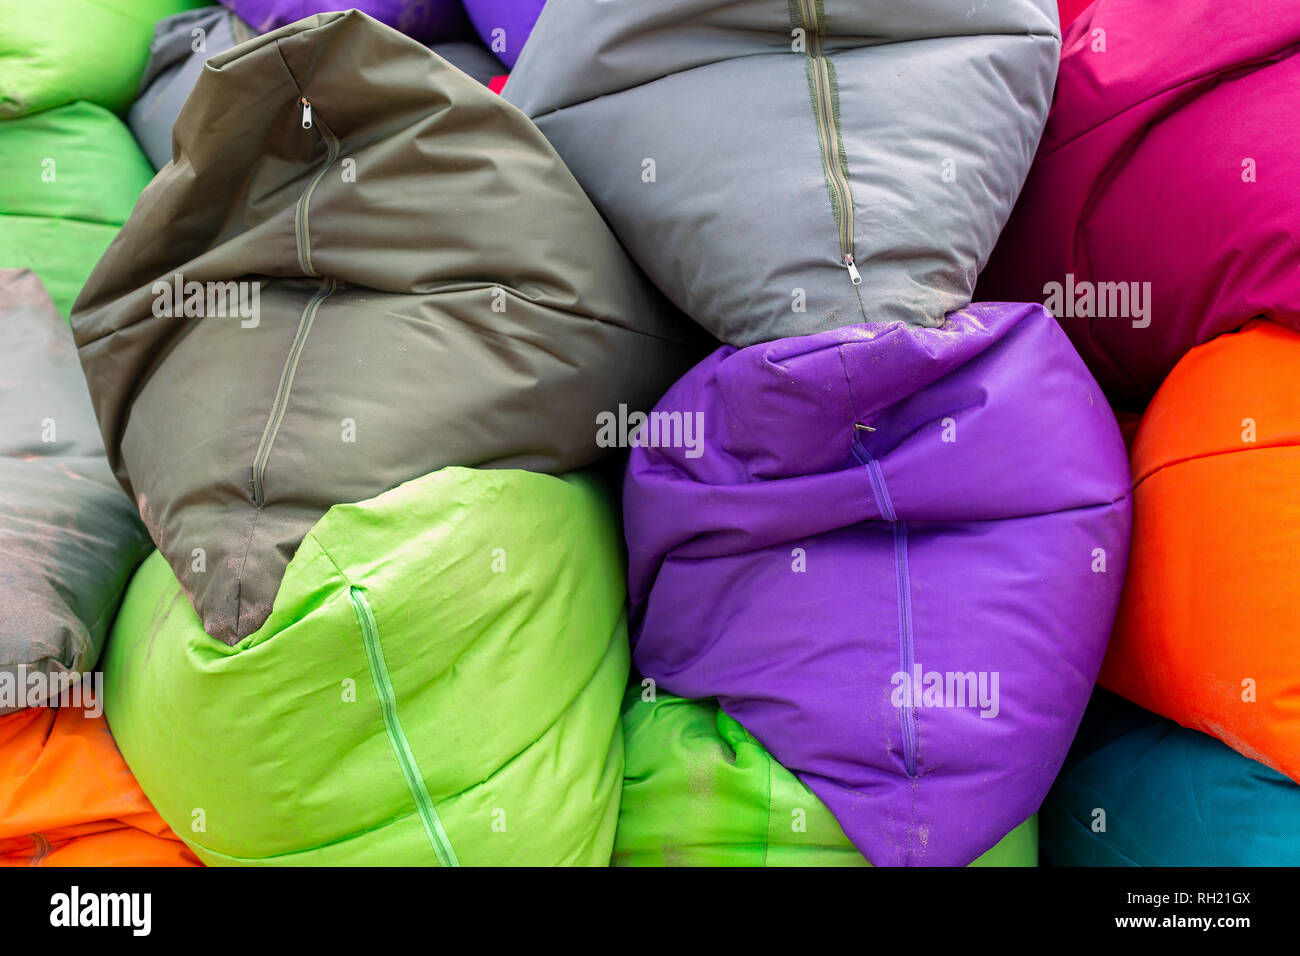 Vibrant and colorful bean bags on a seminyak beach bali on 11th december 2018 - Stock Image